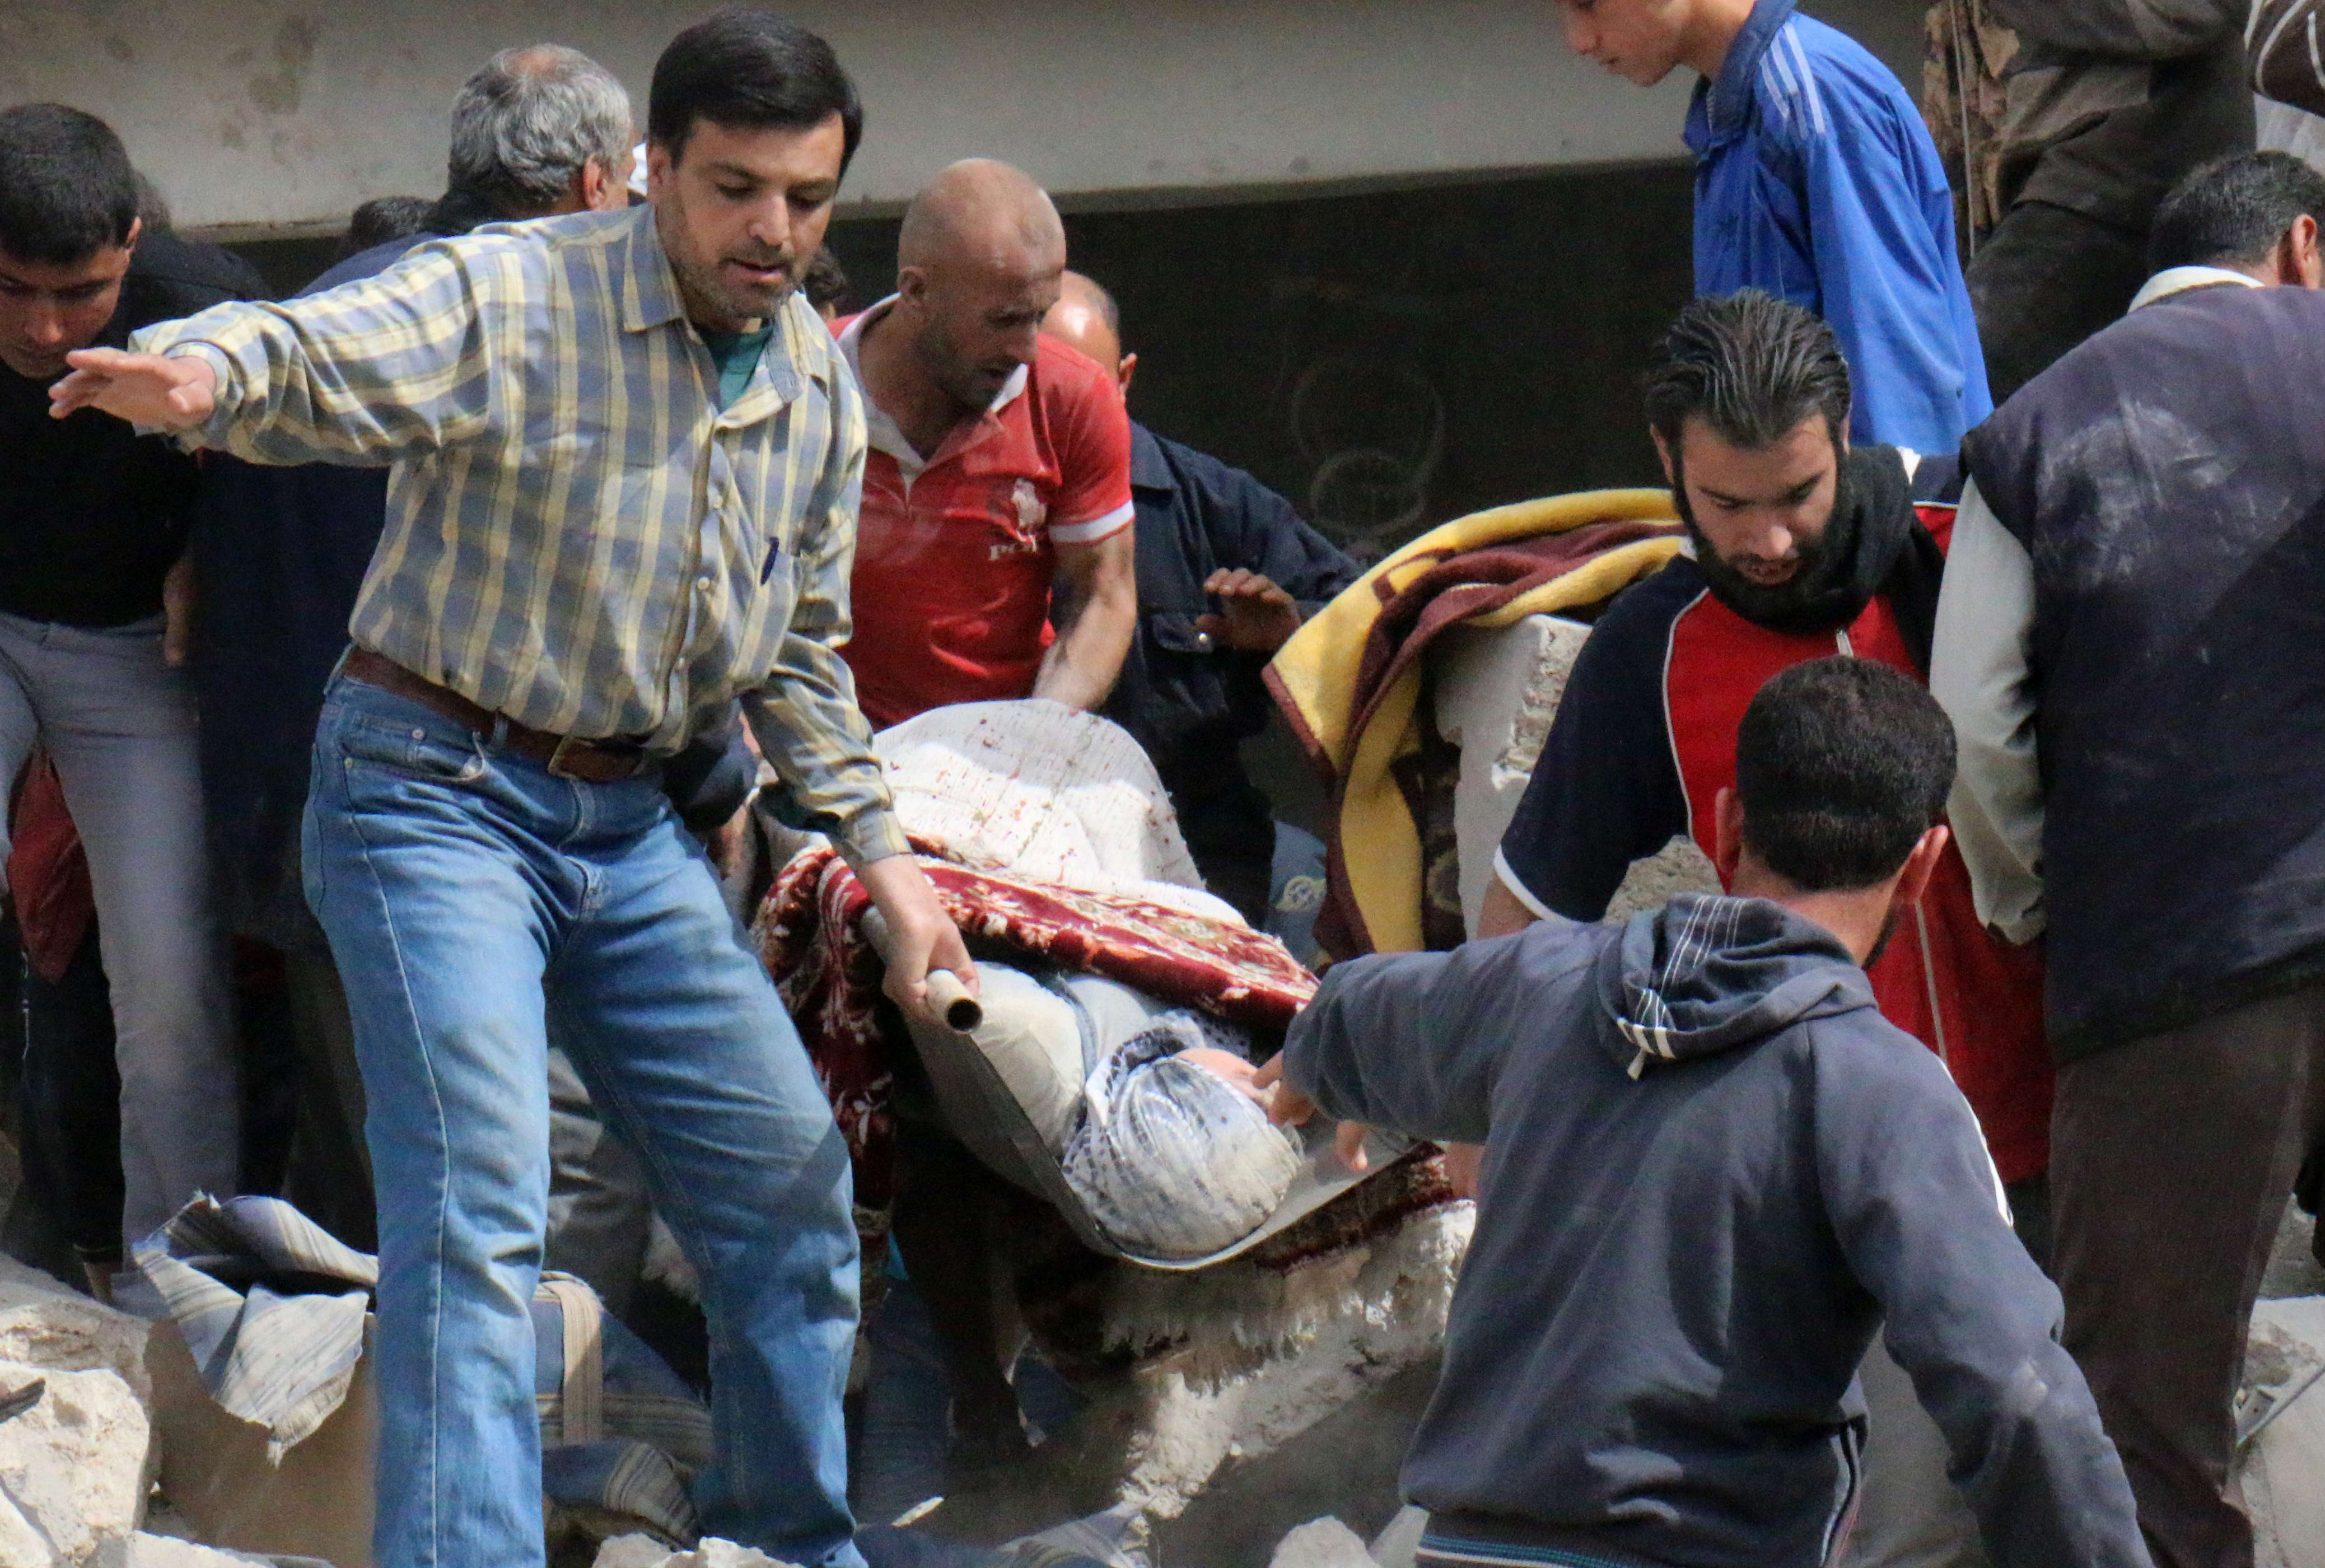 Syrian civilians carry a wounded woman following a reported barrel bomb attack by Syrian pro-government forces in Aleppo's Sakhur district on April 21, 2014. The Syrian Observatory for Human Rights, a Britain-based monitoring group relying on sources inside Syria, says more than 150,000 people have been killed since March 2011, and rebels hold vast swathes of territory. AFP PHOTO /ZEIN AL-RIFAI